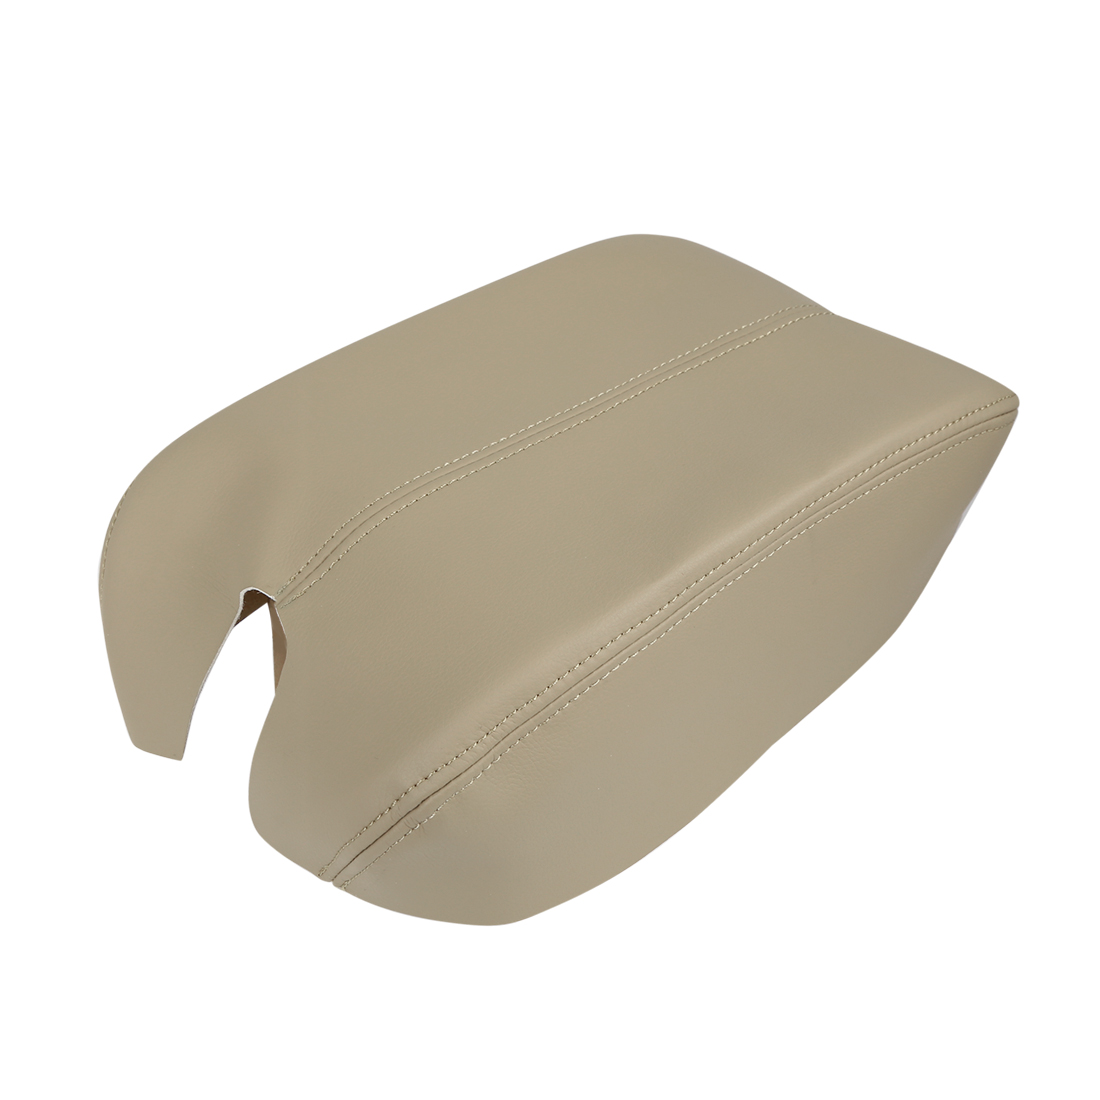 Microfiber Leather Center Console Lid Armrest Cover Beige for 08-12 Honda Accord